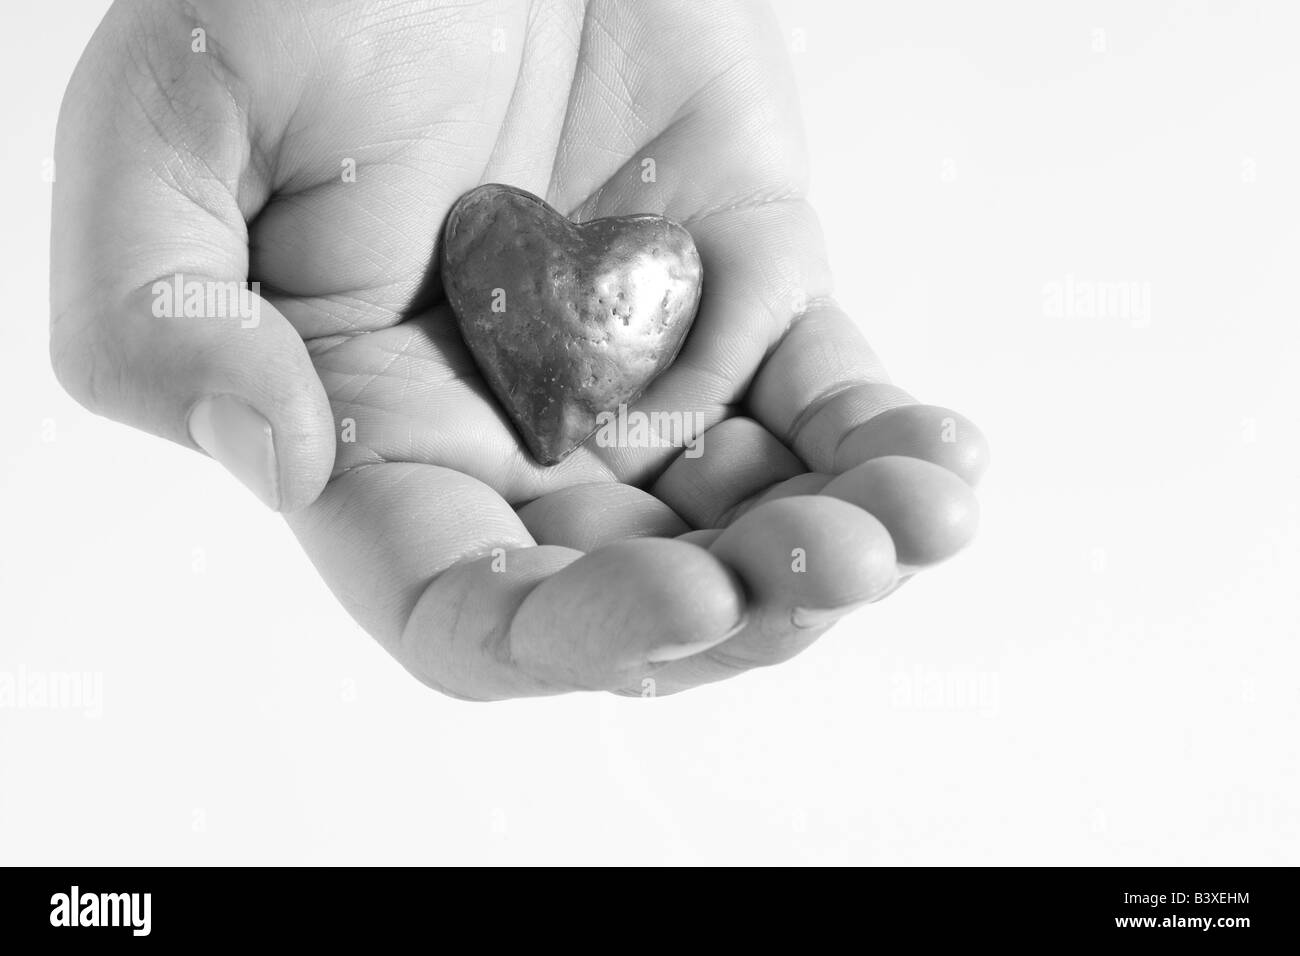 Heart In Hand - Stock Image